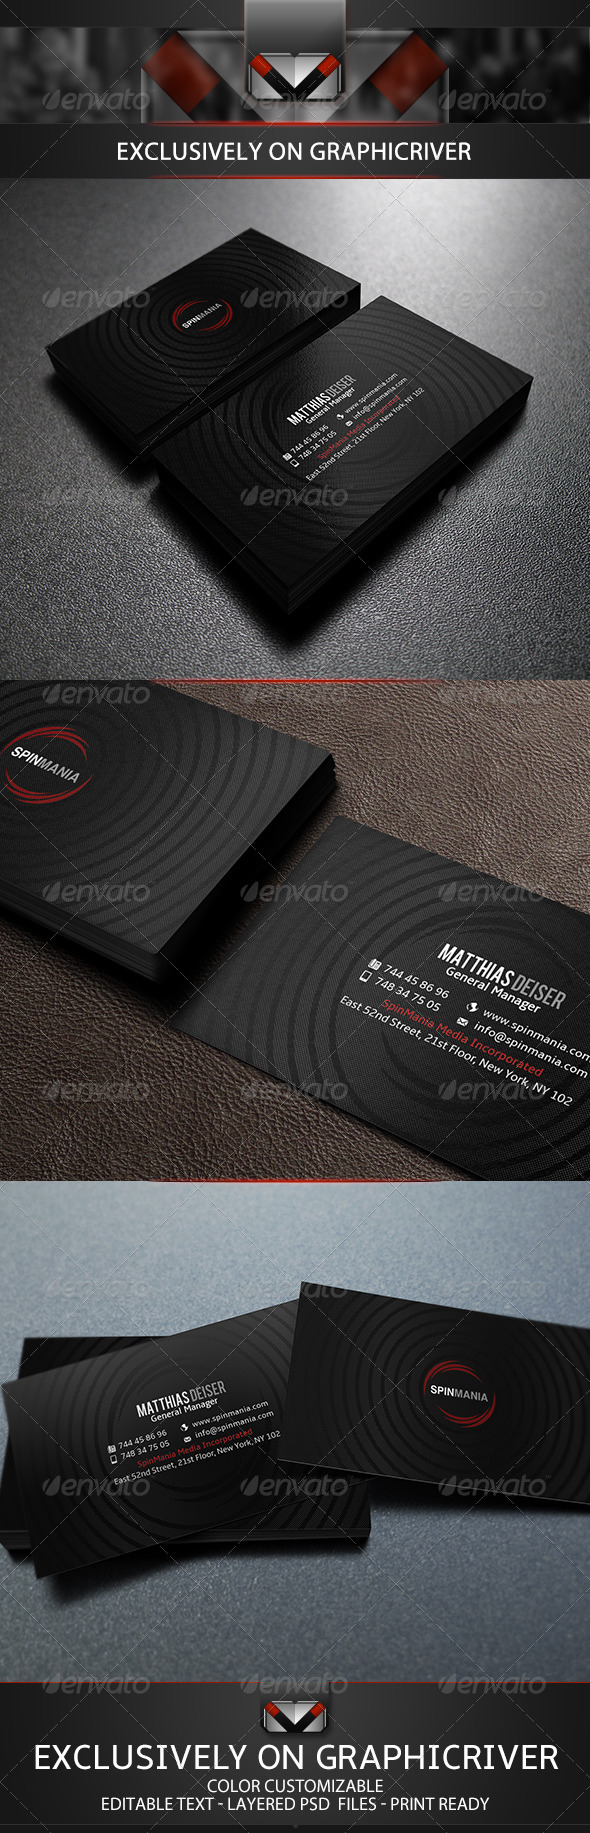 GraphicRiver Elegant Black Business Card 5690774